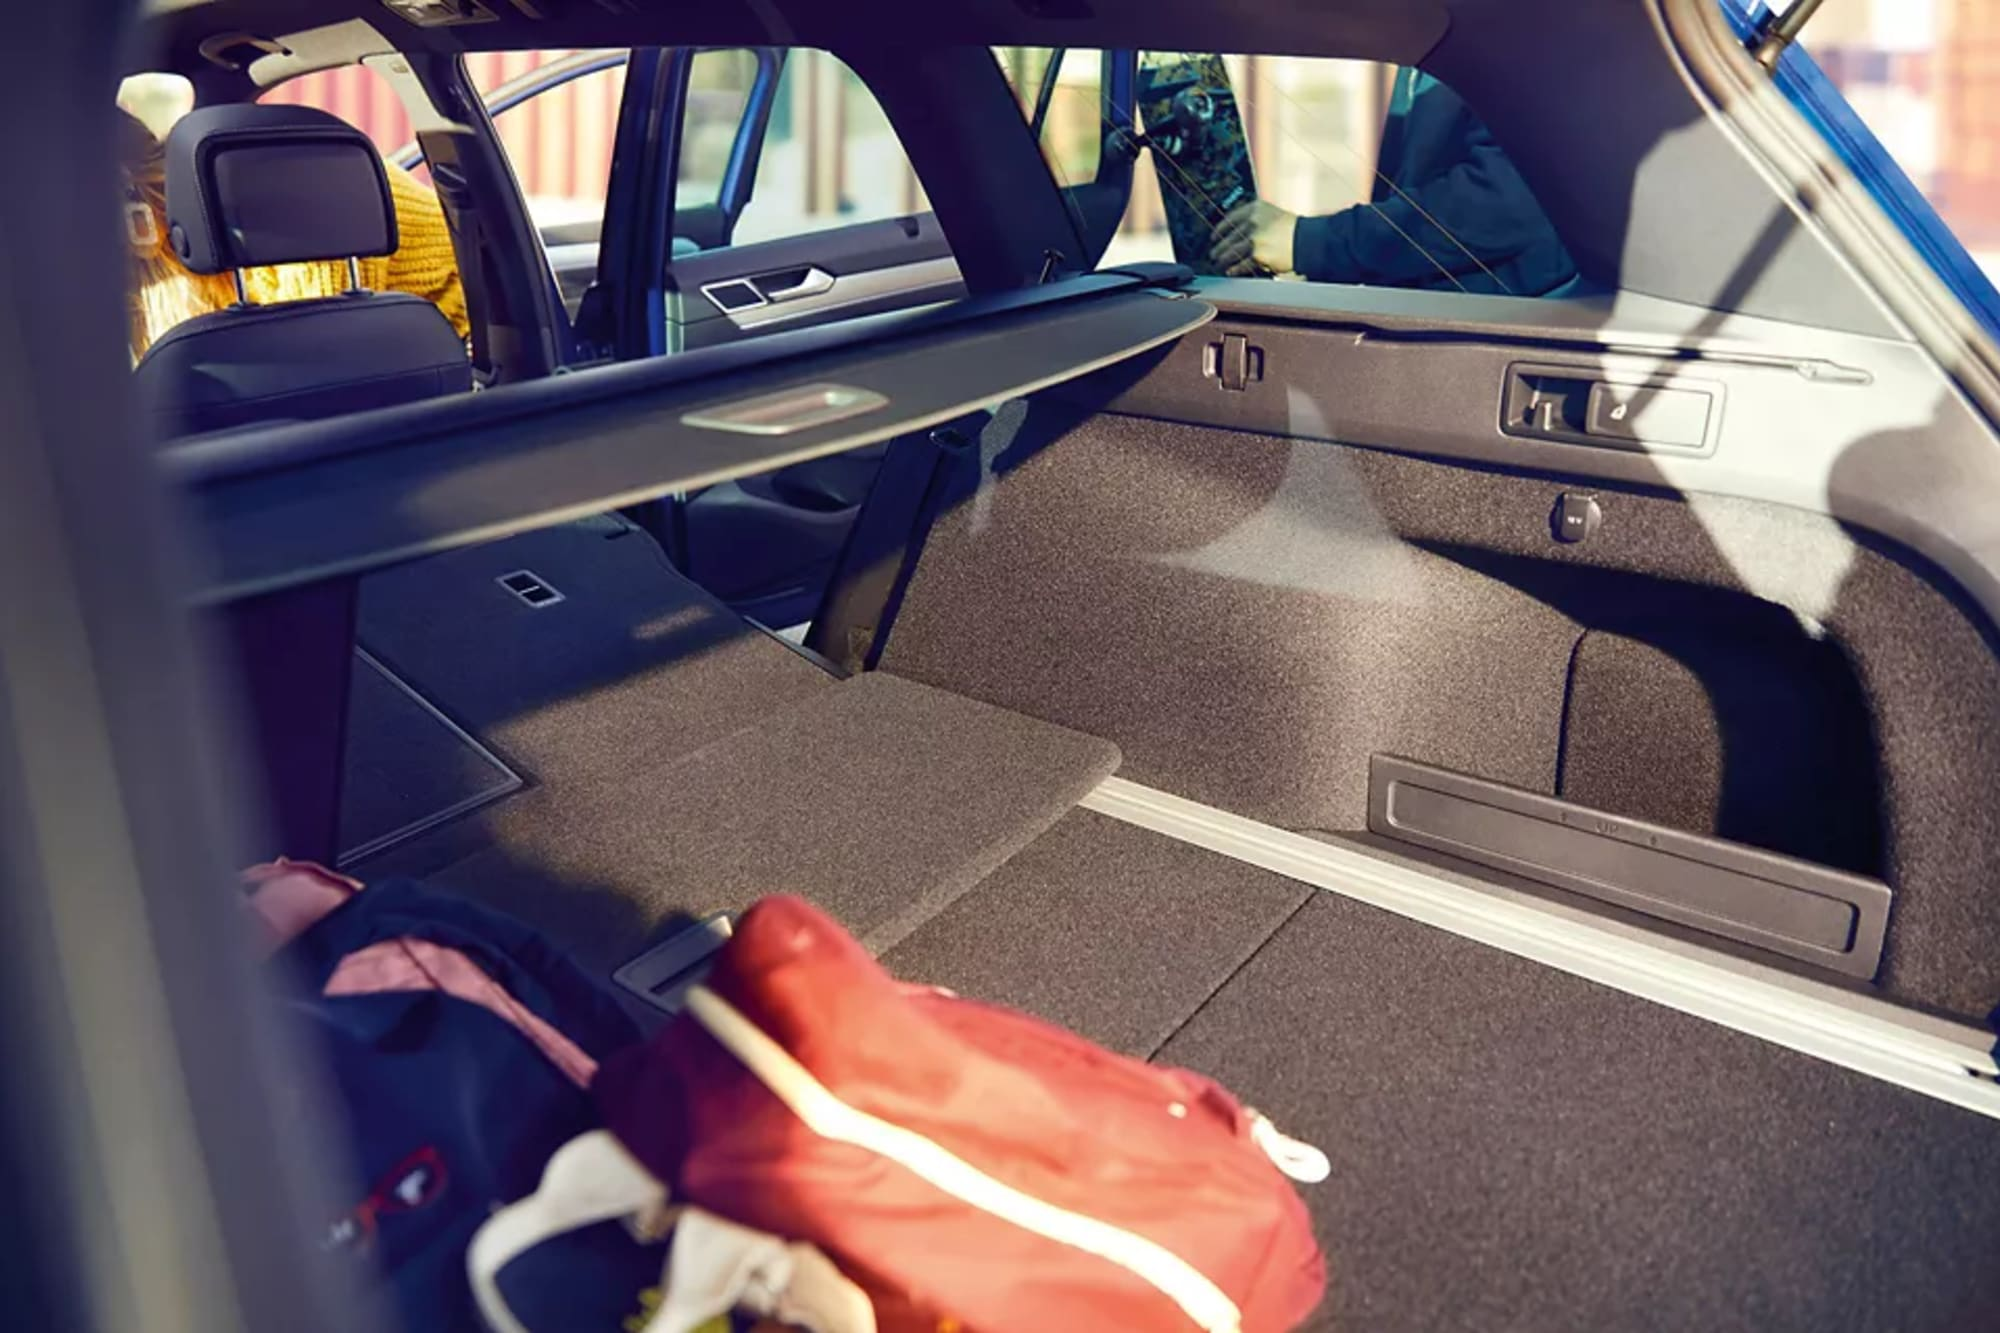 PA4260_Passat-luggage-compartment-with-folded-back-seat_3-2_f-cc